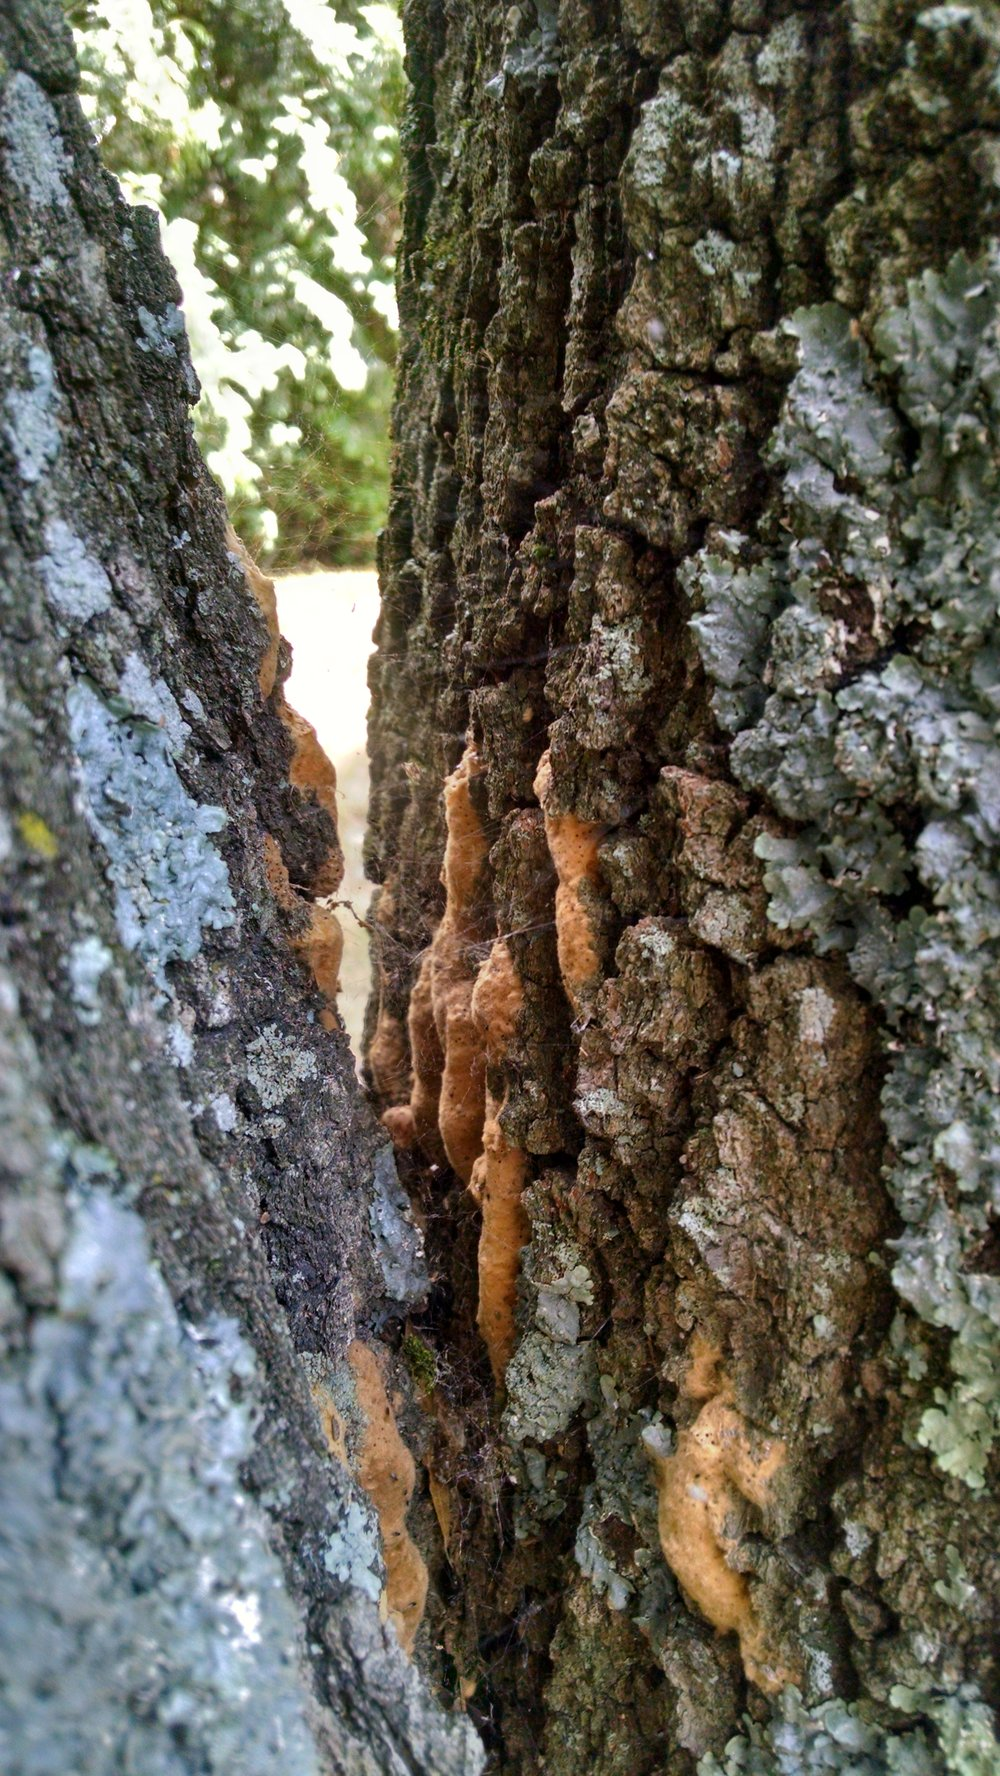 Gypsy moth overwinters in tan-colored, irregular shaped egg masses laid on the trunks of trees and contain 50 to 1500 individual eggs (K. Bernard).